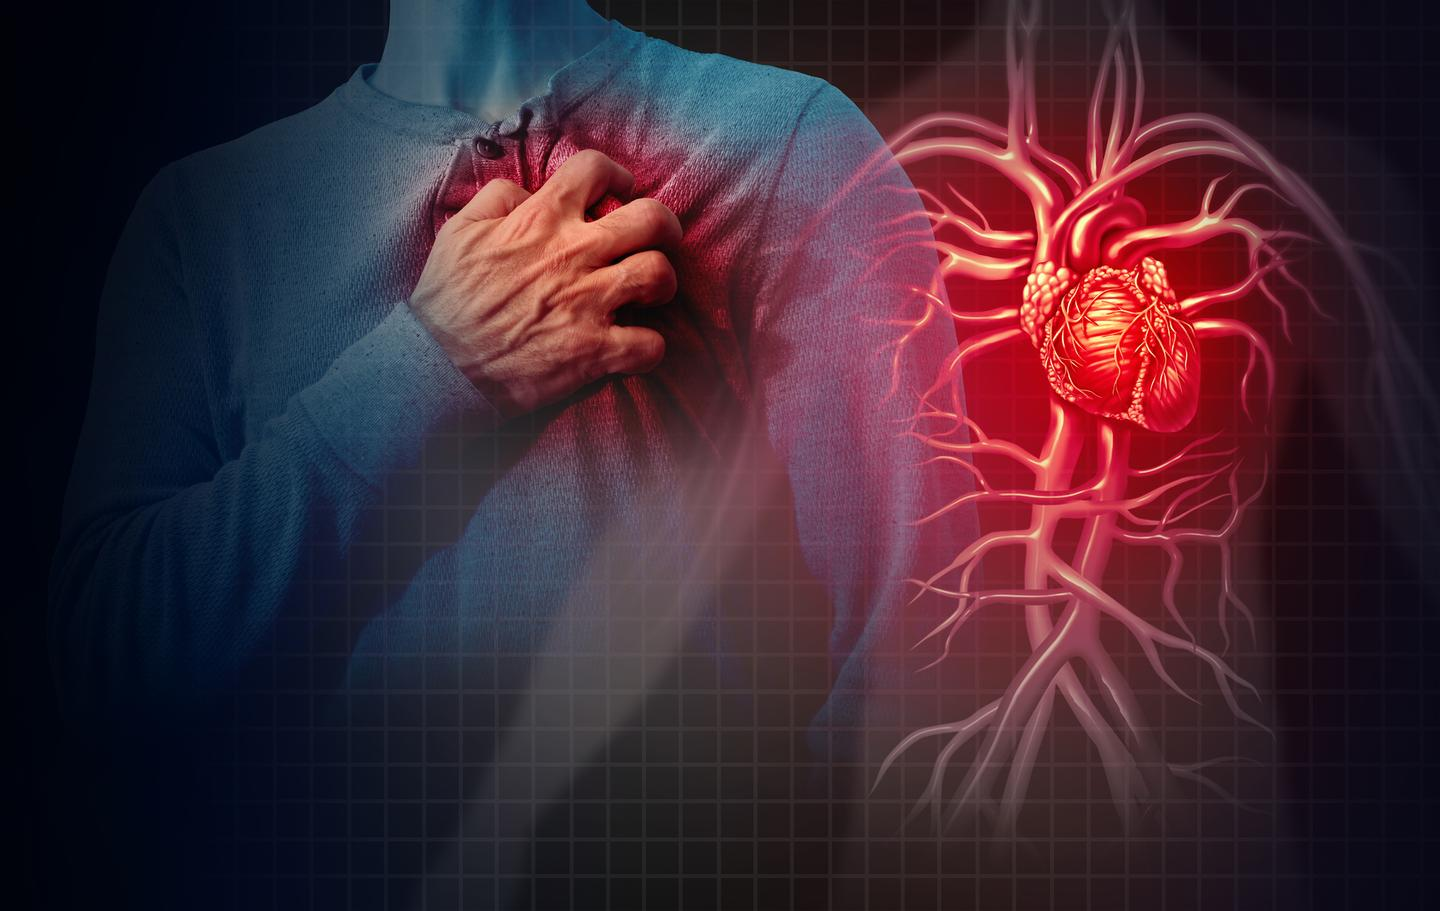 New research could lead to a gene therapy treatment for heart disease